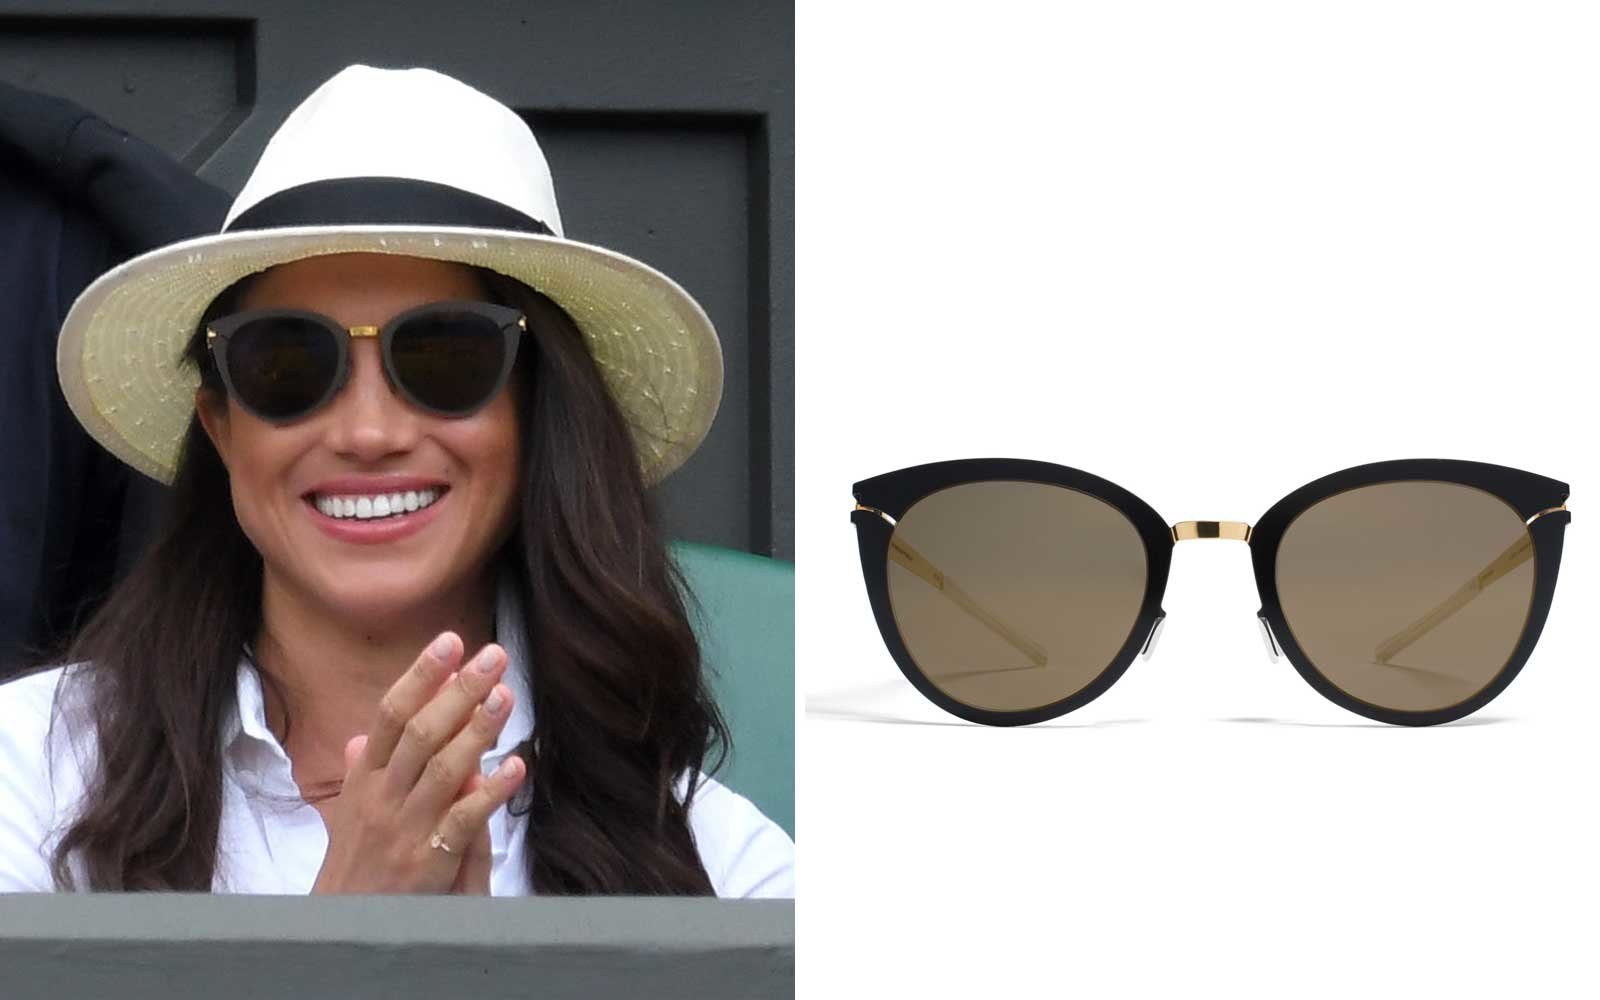 118b26346c The Best Sunglasses According to Celebrities